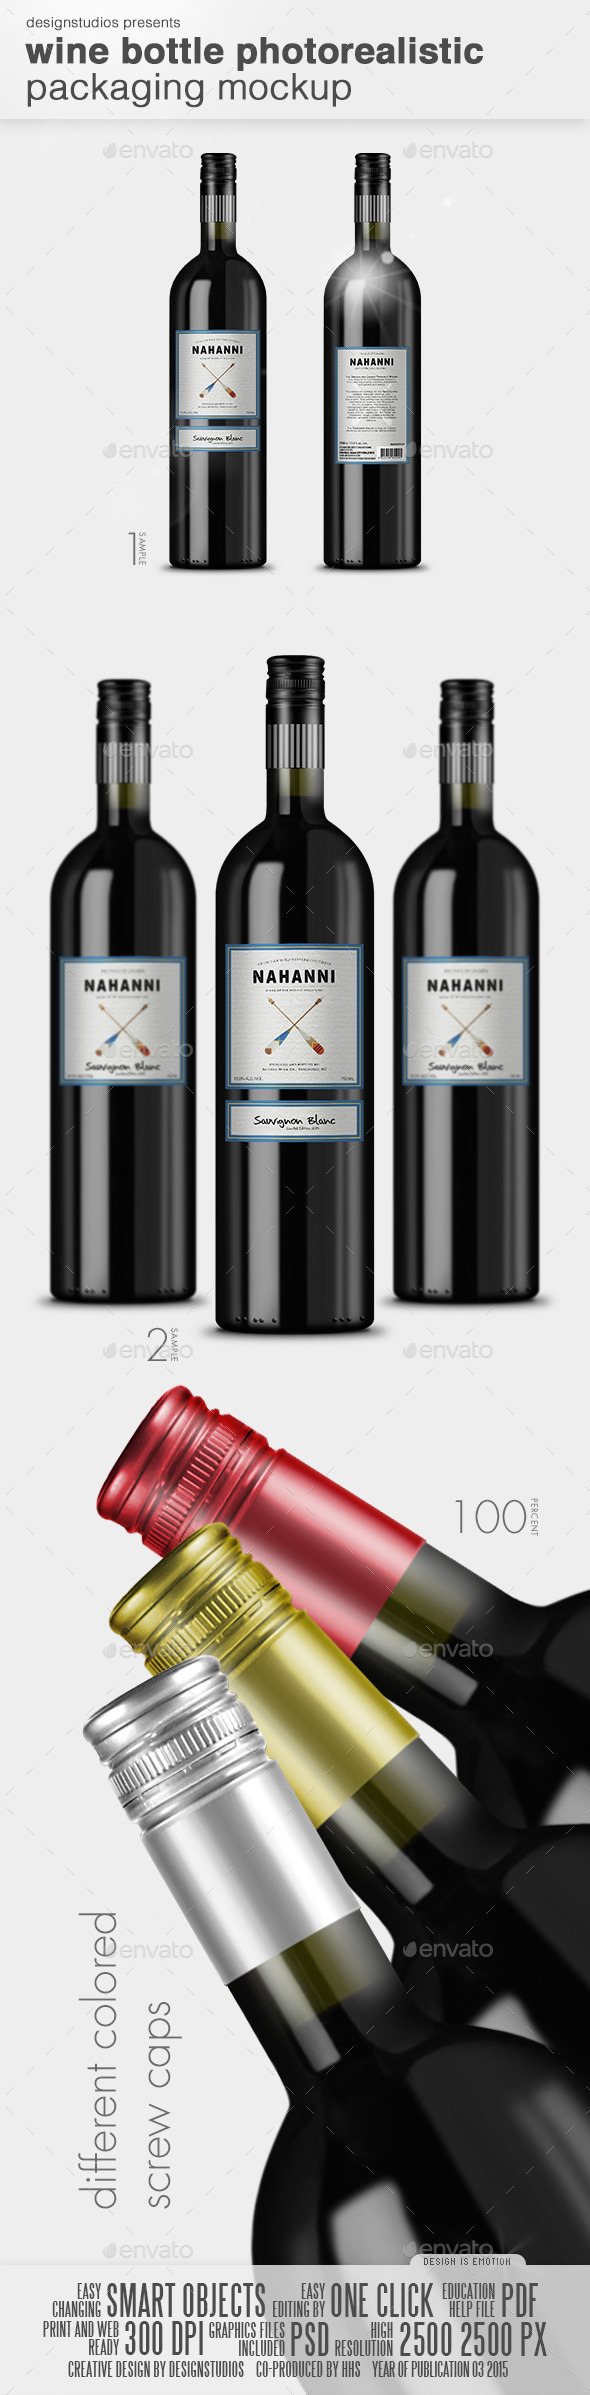 Wine Bottle Photorealistic Packaging Mockup